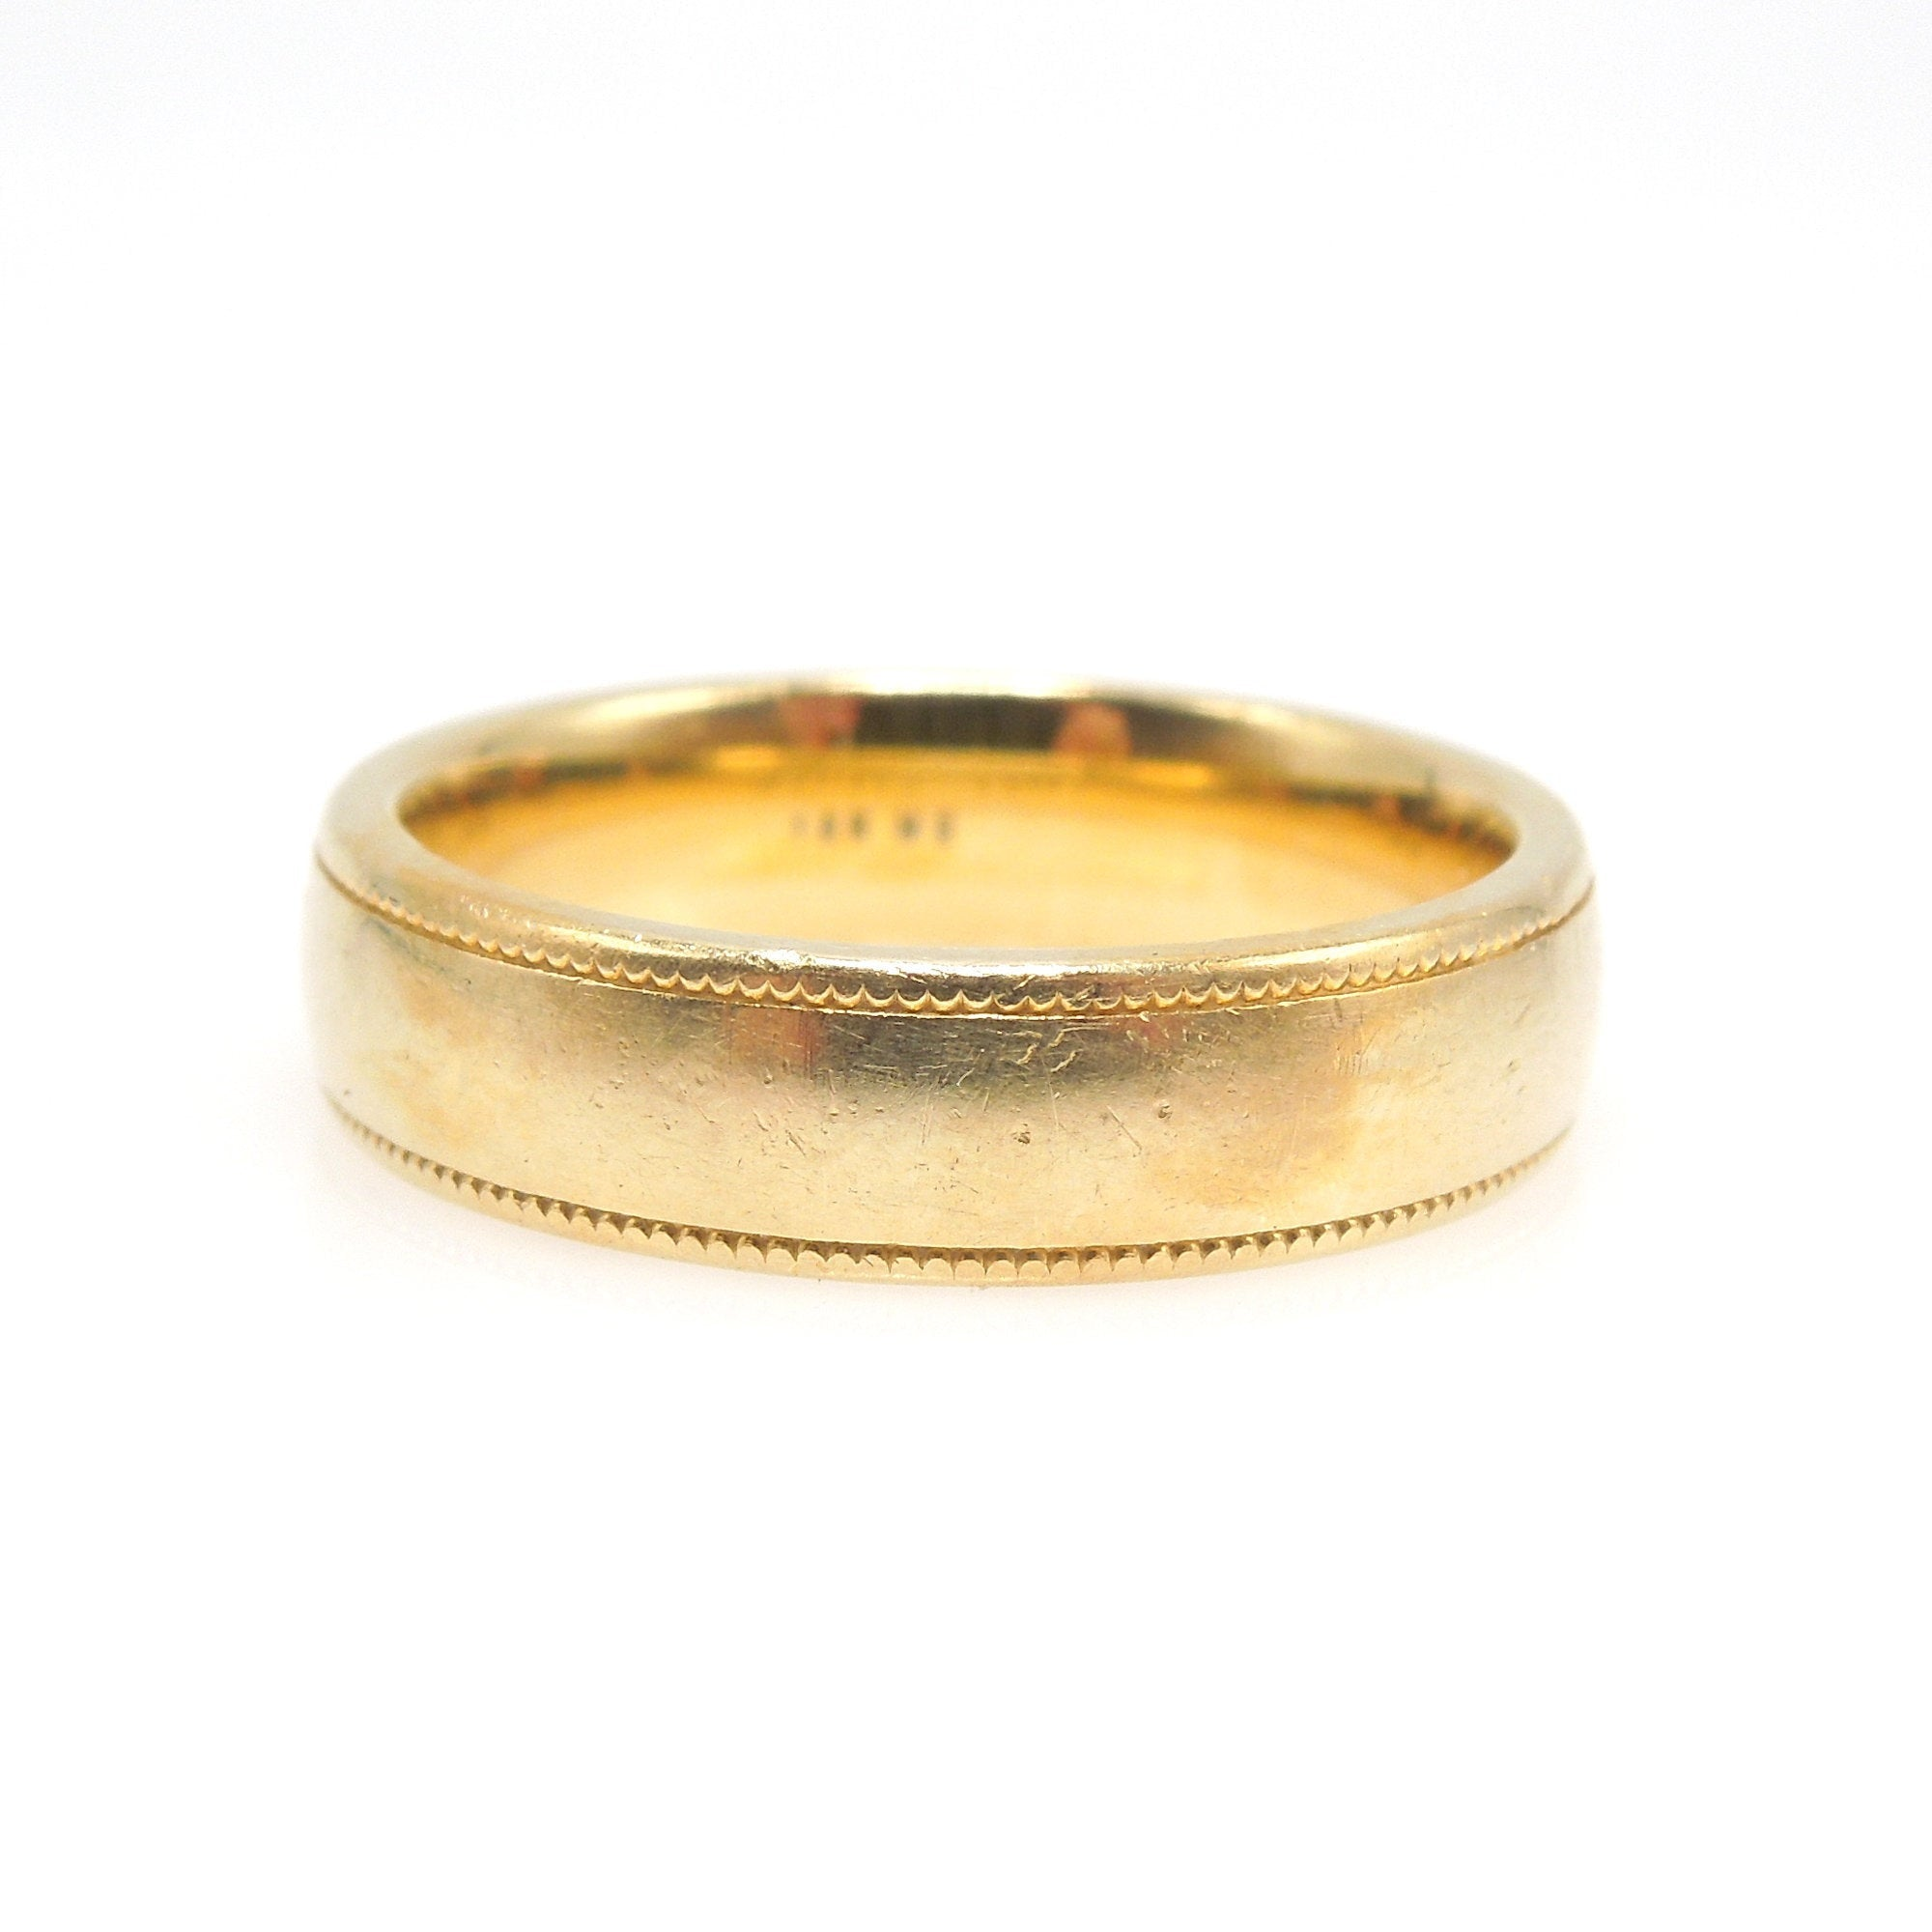 5mm Wide 18K Yellow Gold Comfort Fit Wedding Band